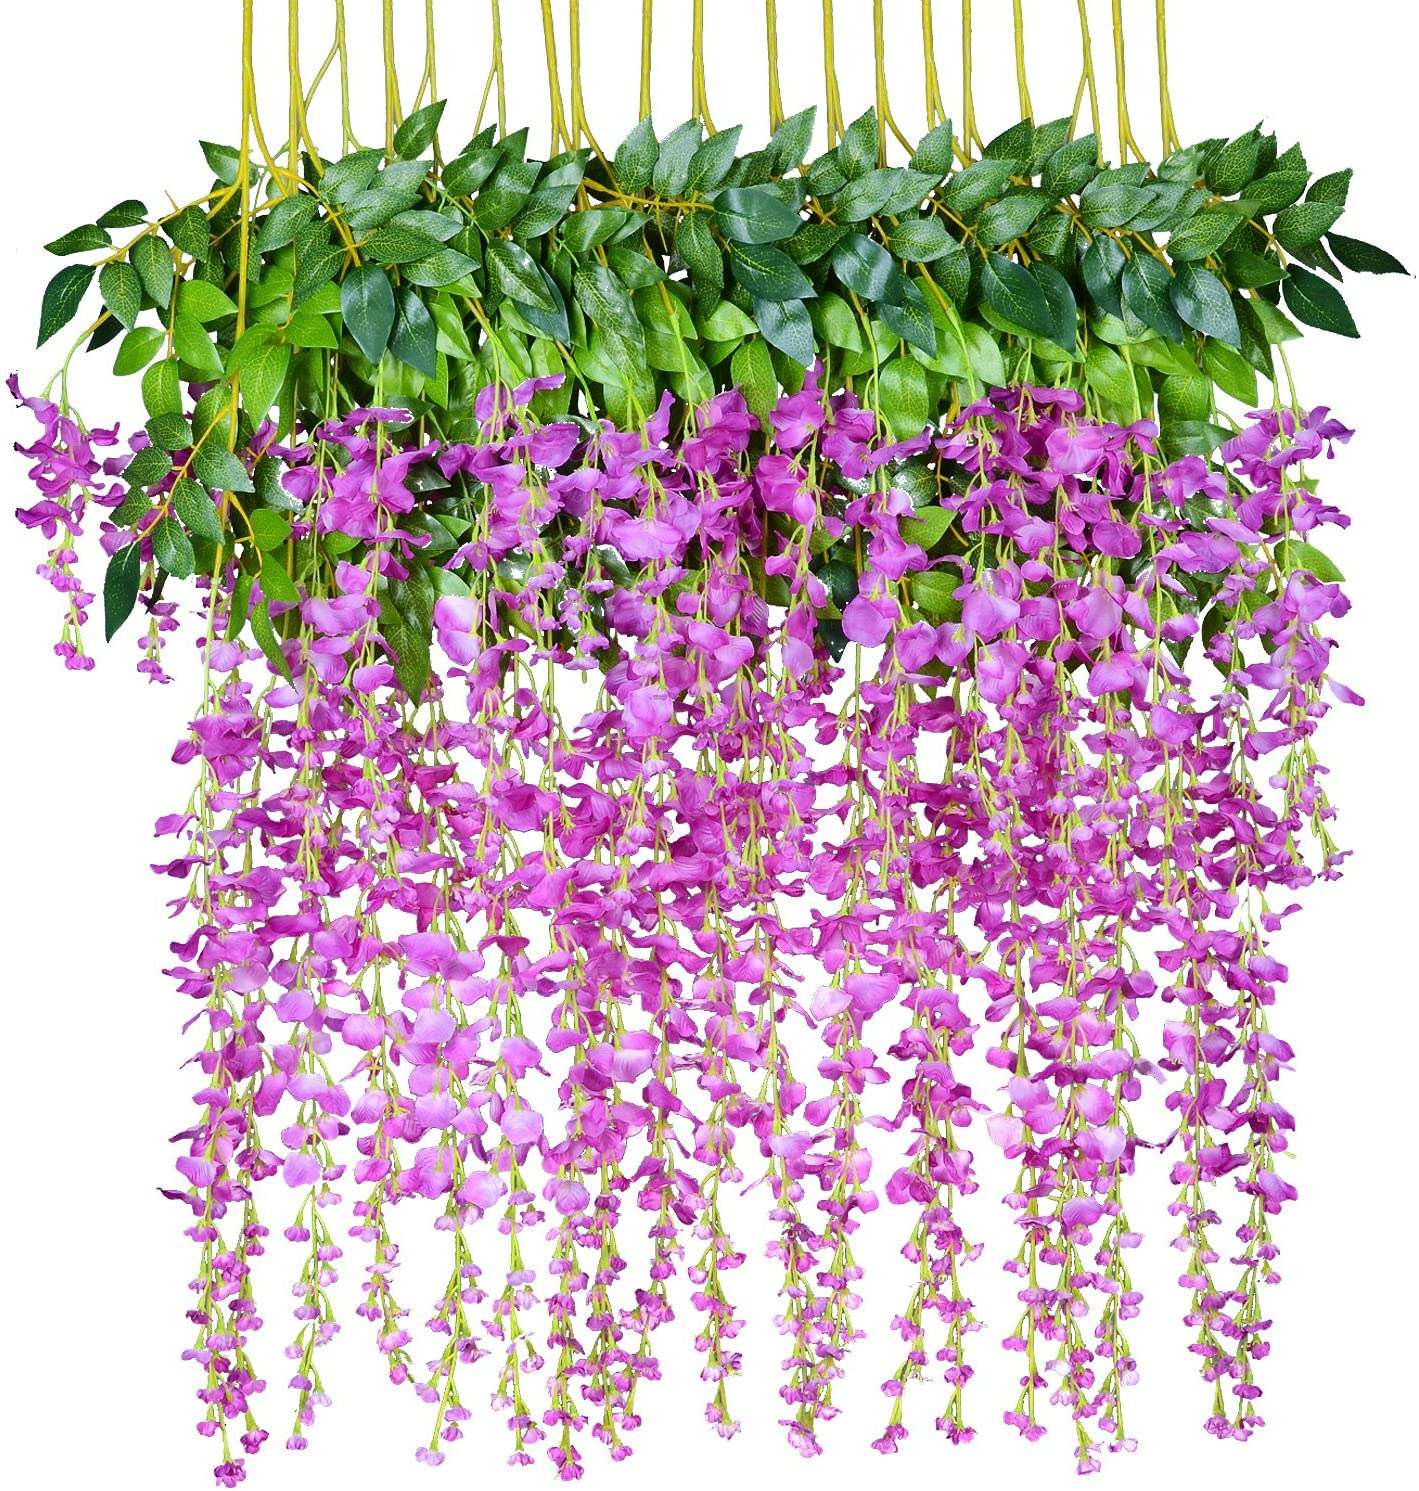 12 Pack 1 Piece 3.6 Feet Artificial Flowers Silk Wisteria Vine Ratta Hanging Flower for Wedding Garden Floral DIY Living Room Office Decor (Purple)